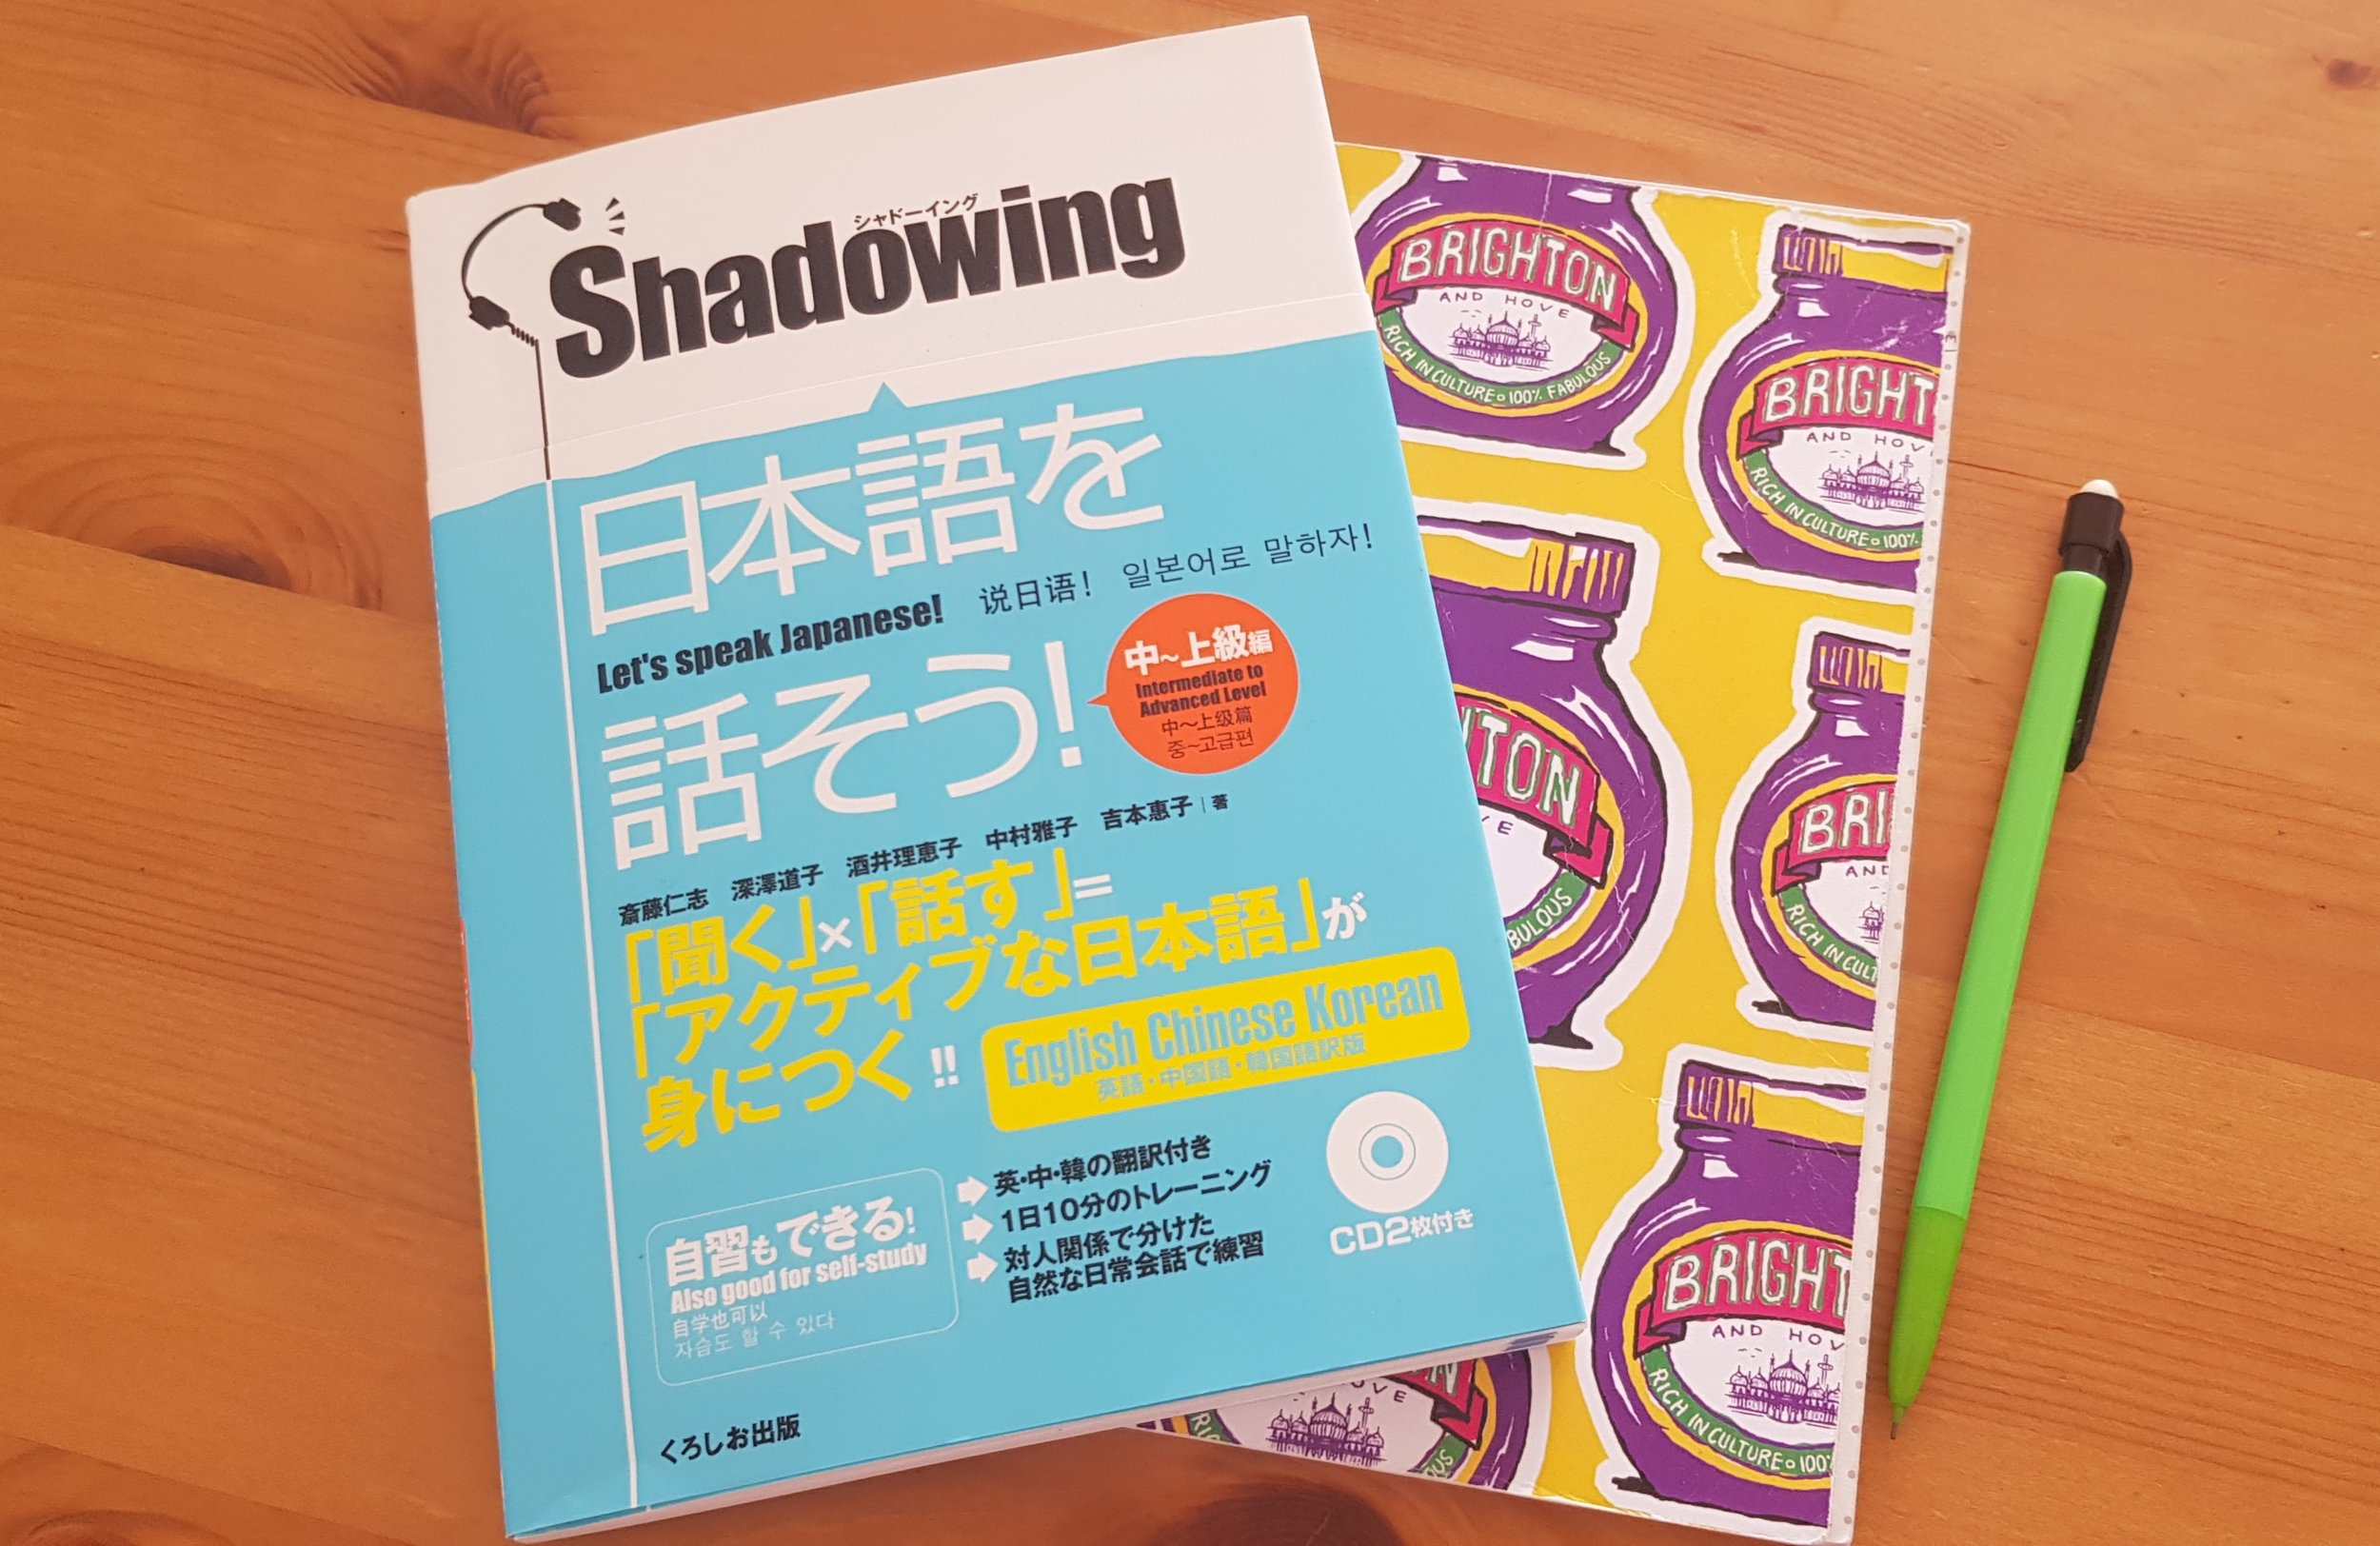 Step Up Japanese Fran Wrigley Japanese Lessons Brighton Shadowing.jpg